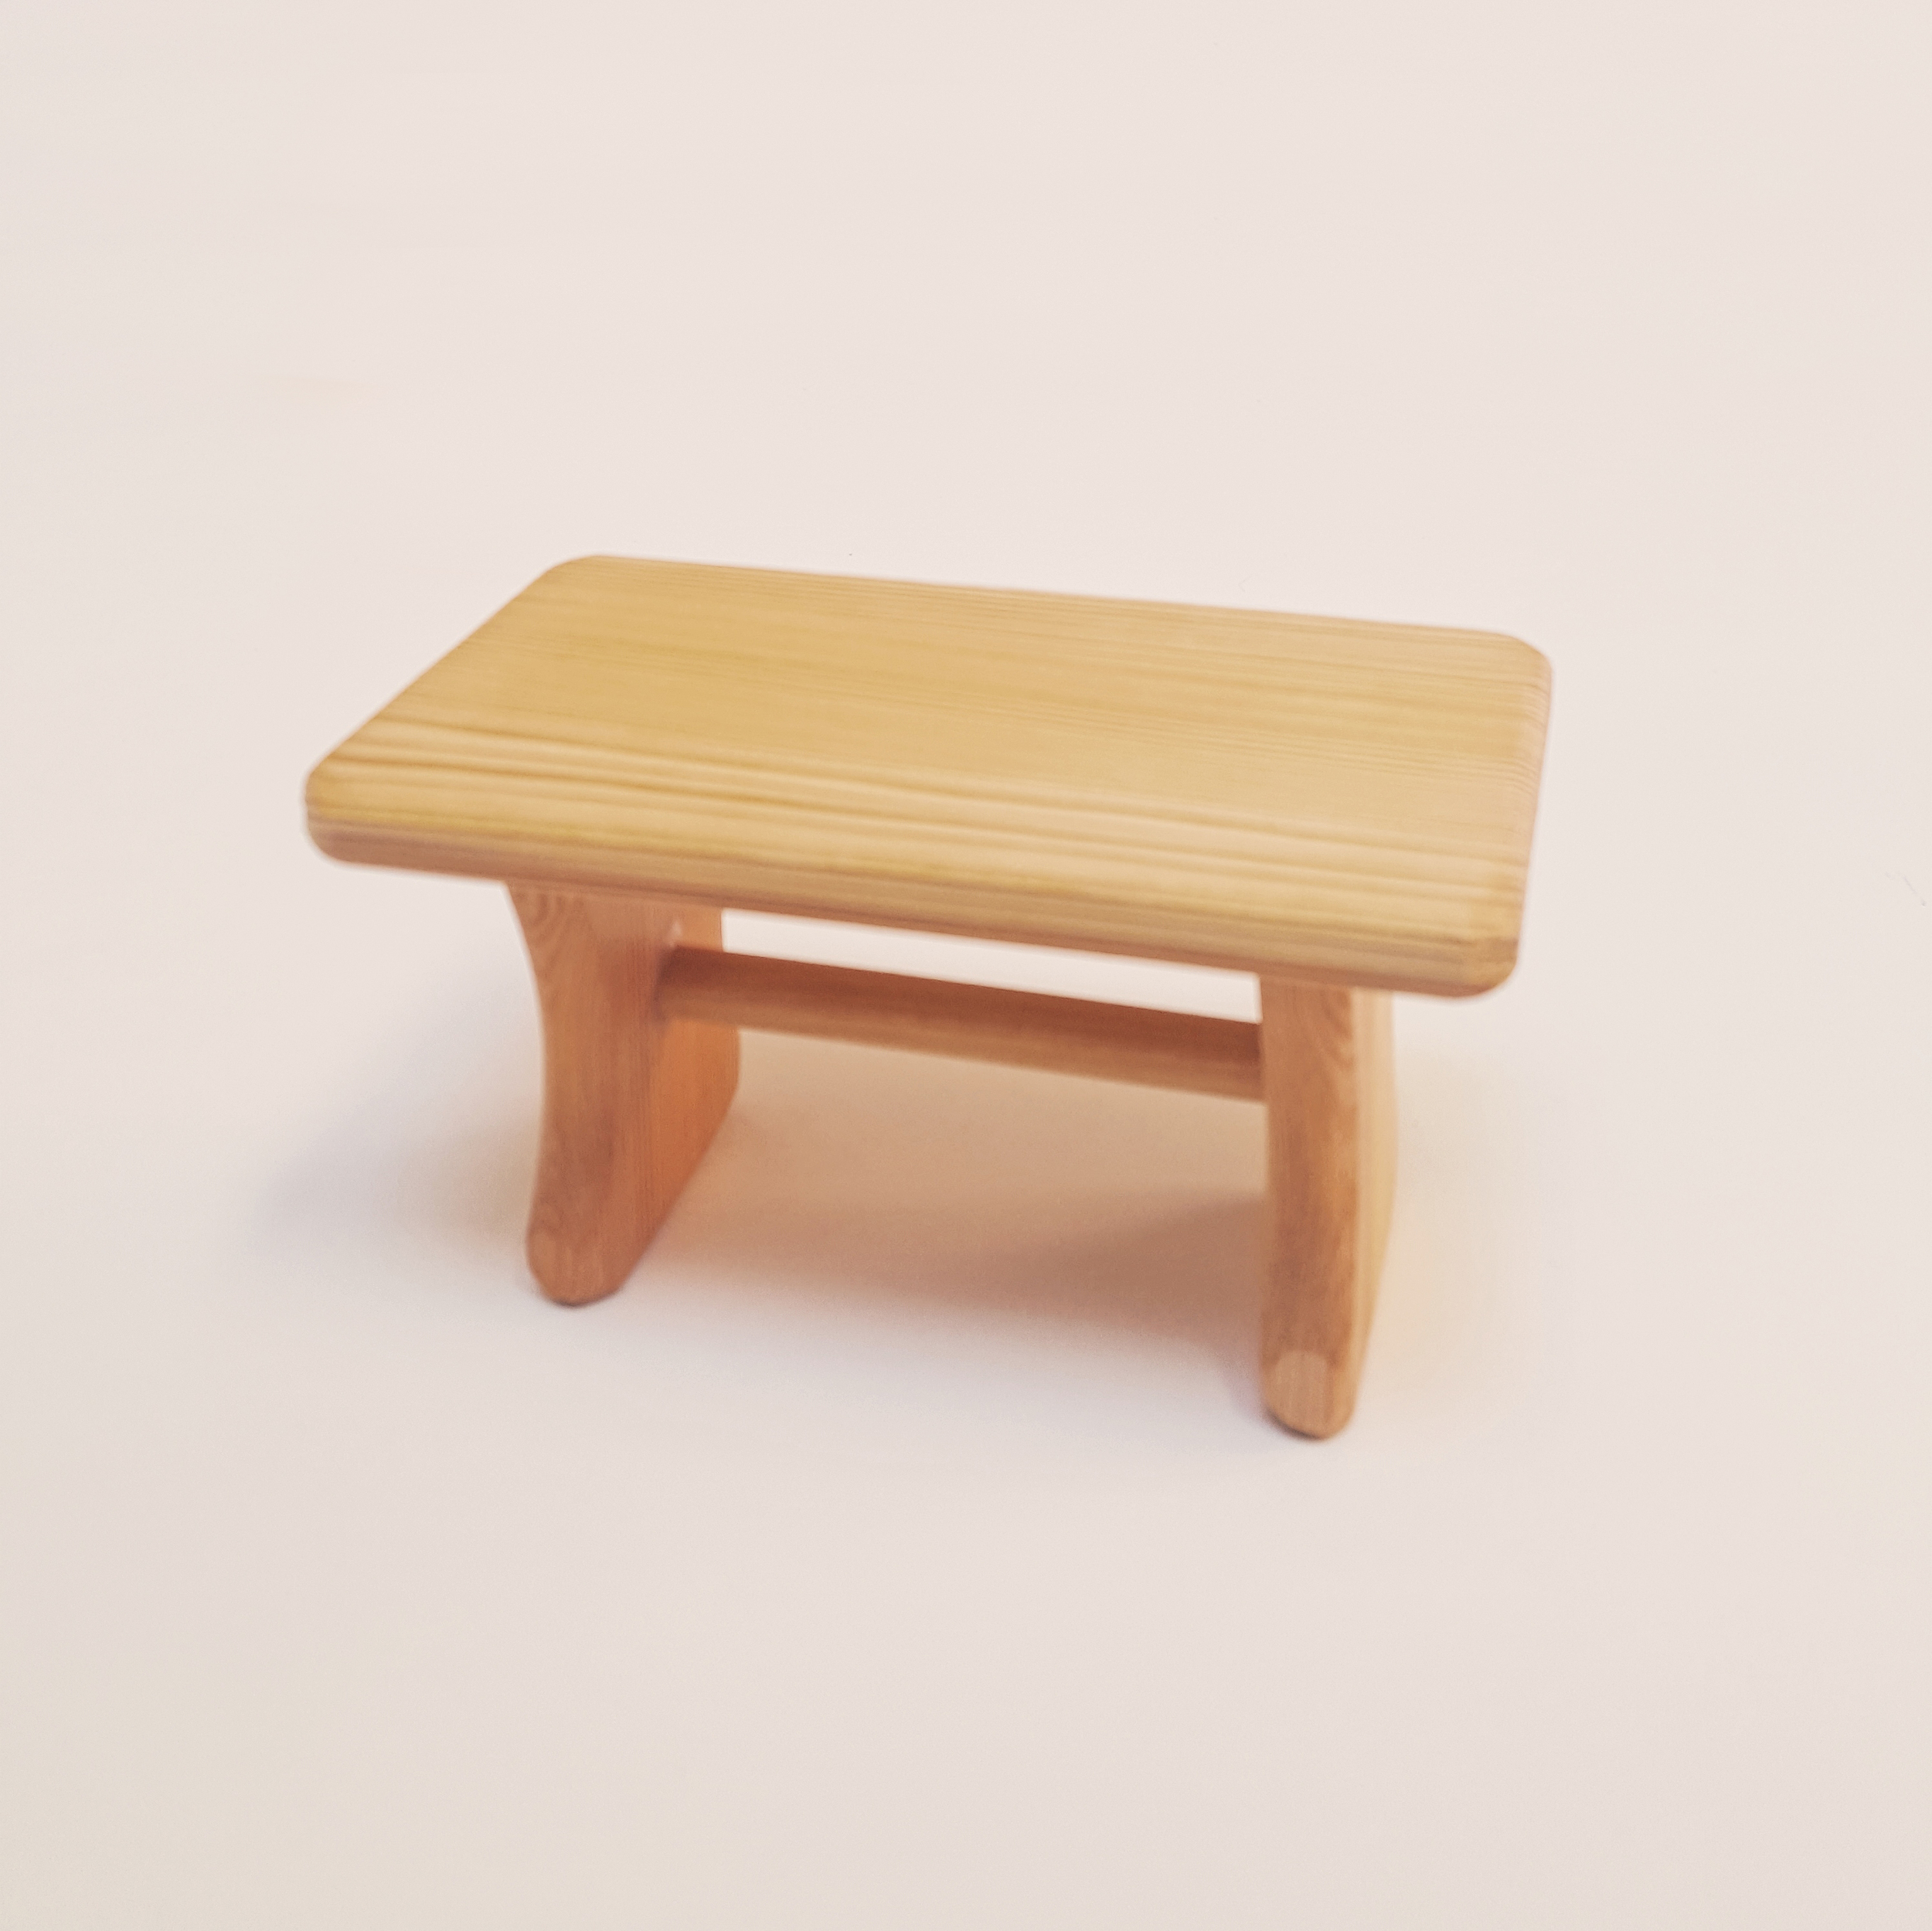 Table miniature en bois